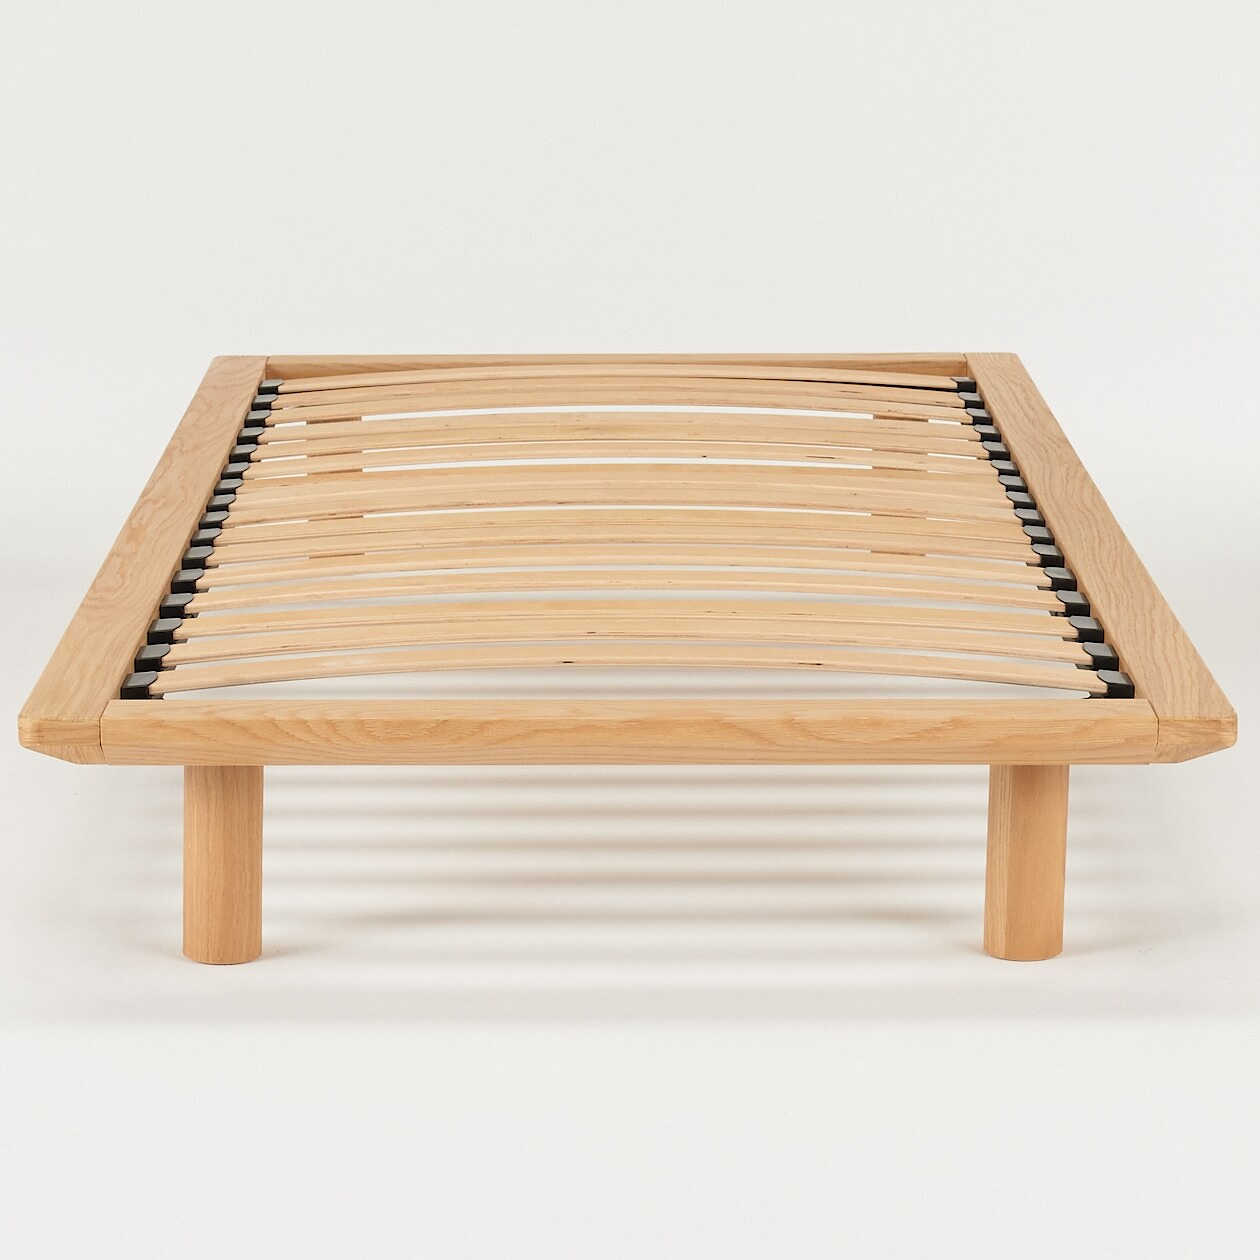 oak wood bed frame muji